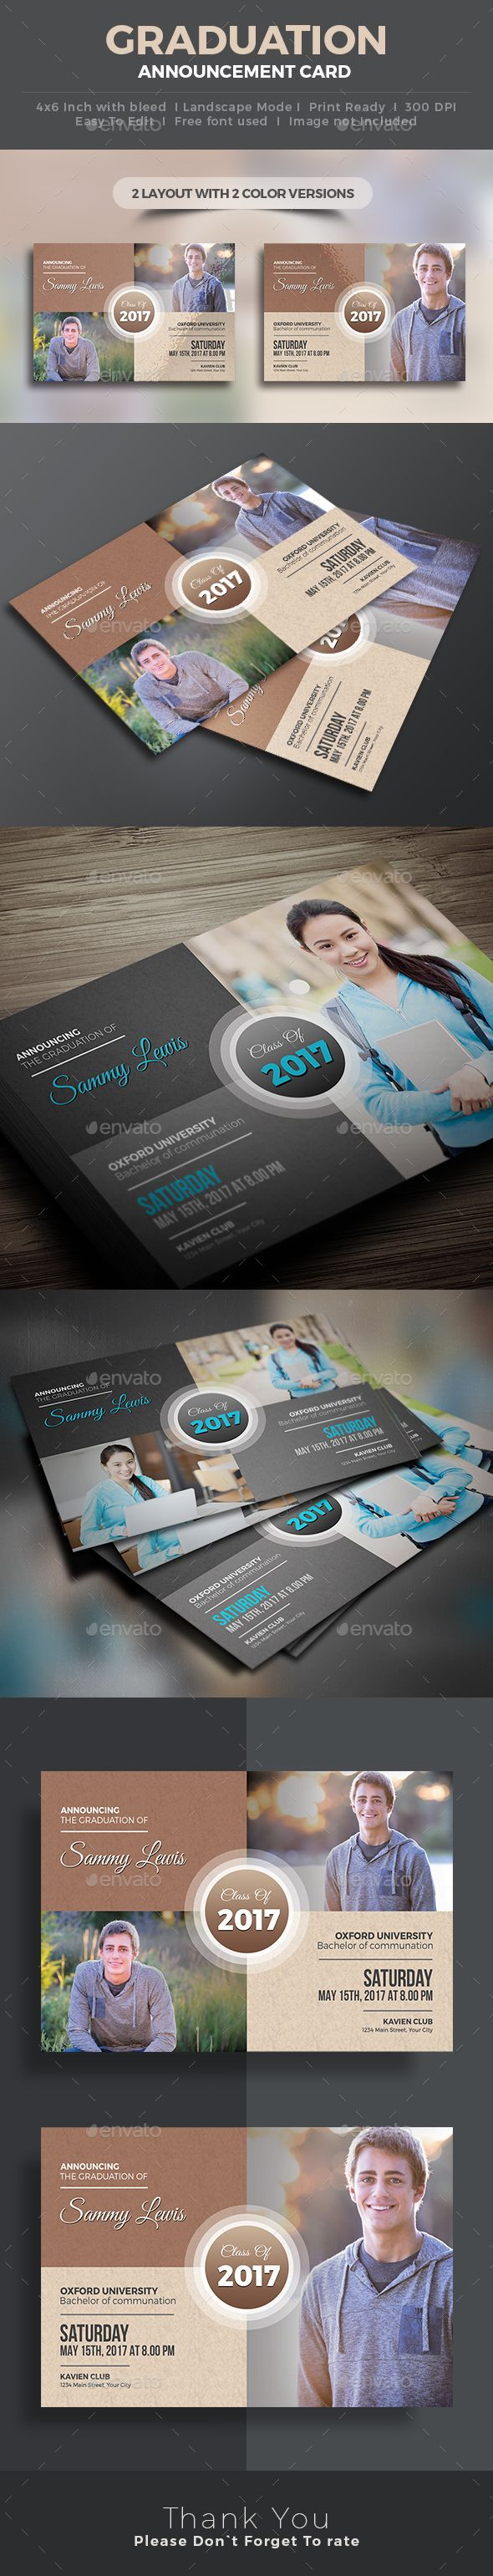 Graduation Invitation - Invitations Cards & Invites | Graduation Invitation Poster | Instant Download http://graphicriver.net/item/graduation-invitation/16263000?ref=themedevisers